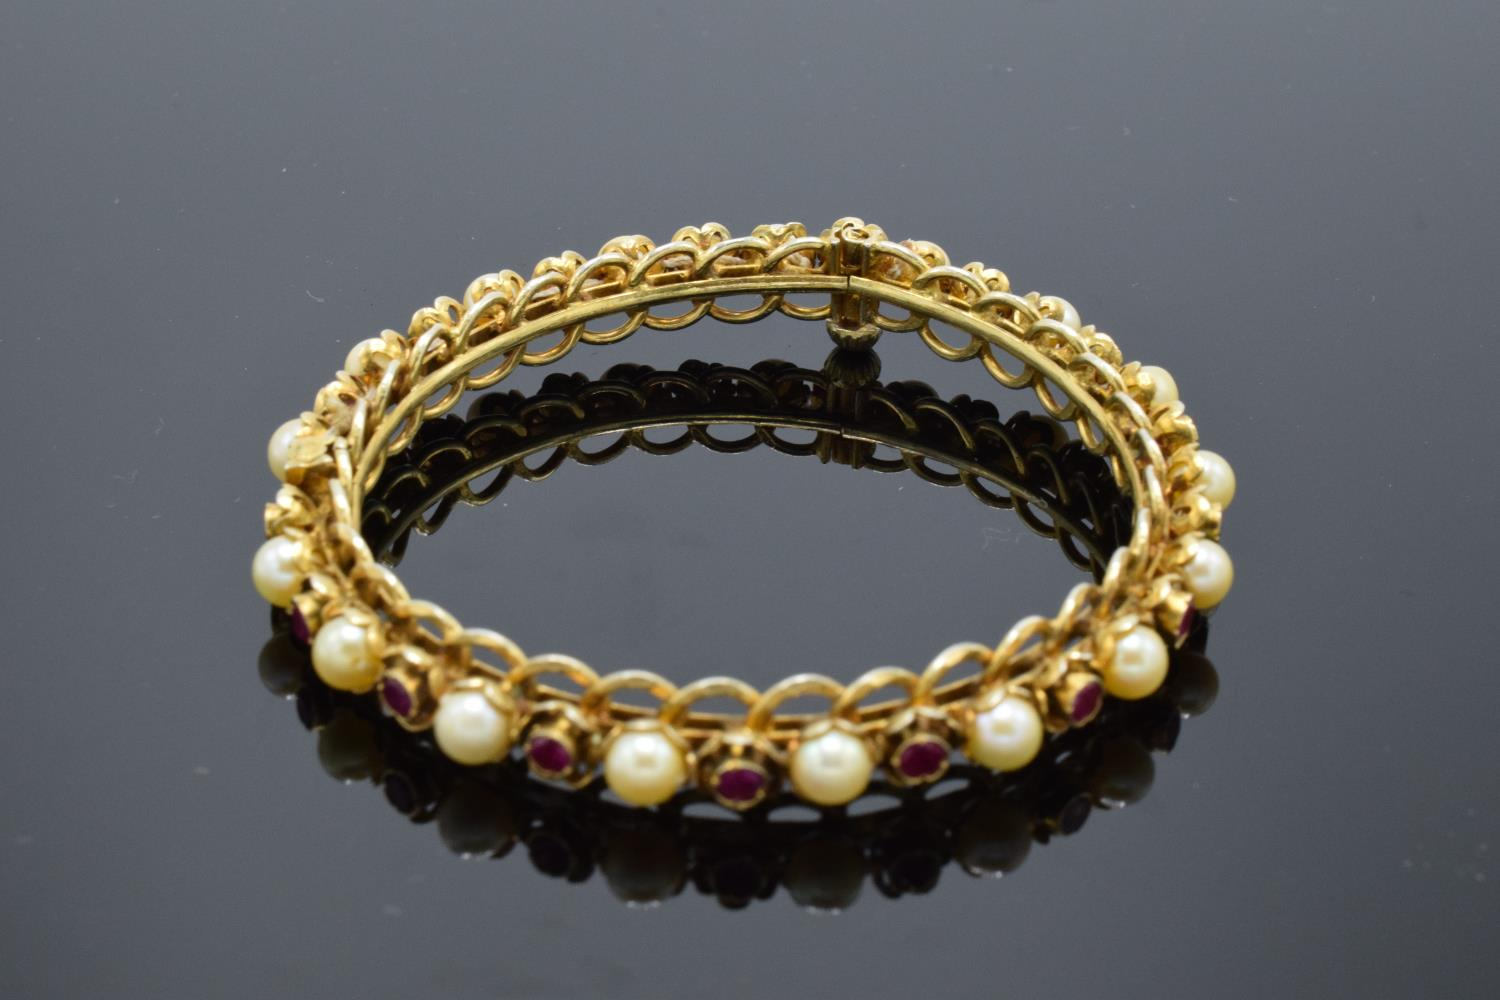 Quality silver gilt bangle set with ruby and pearl stones. - Image 3 of 3